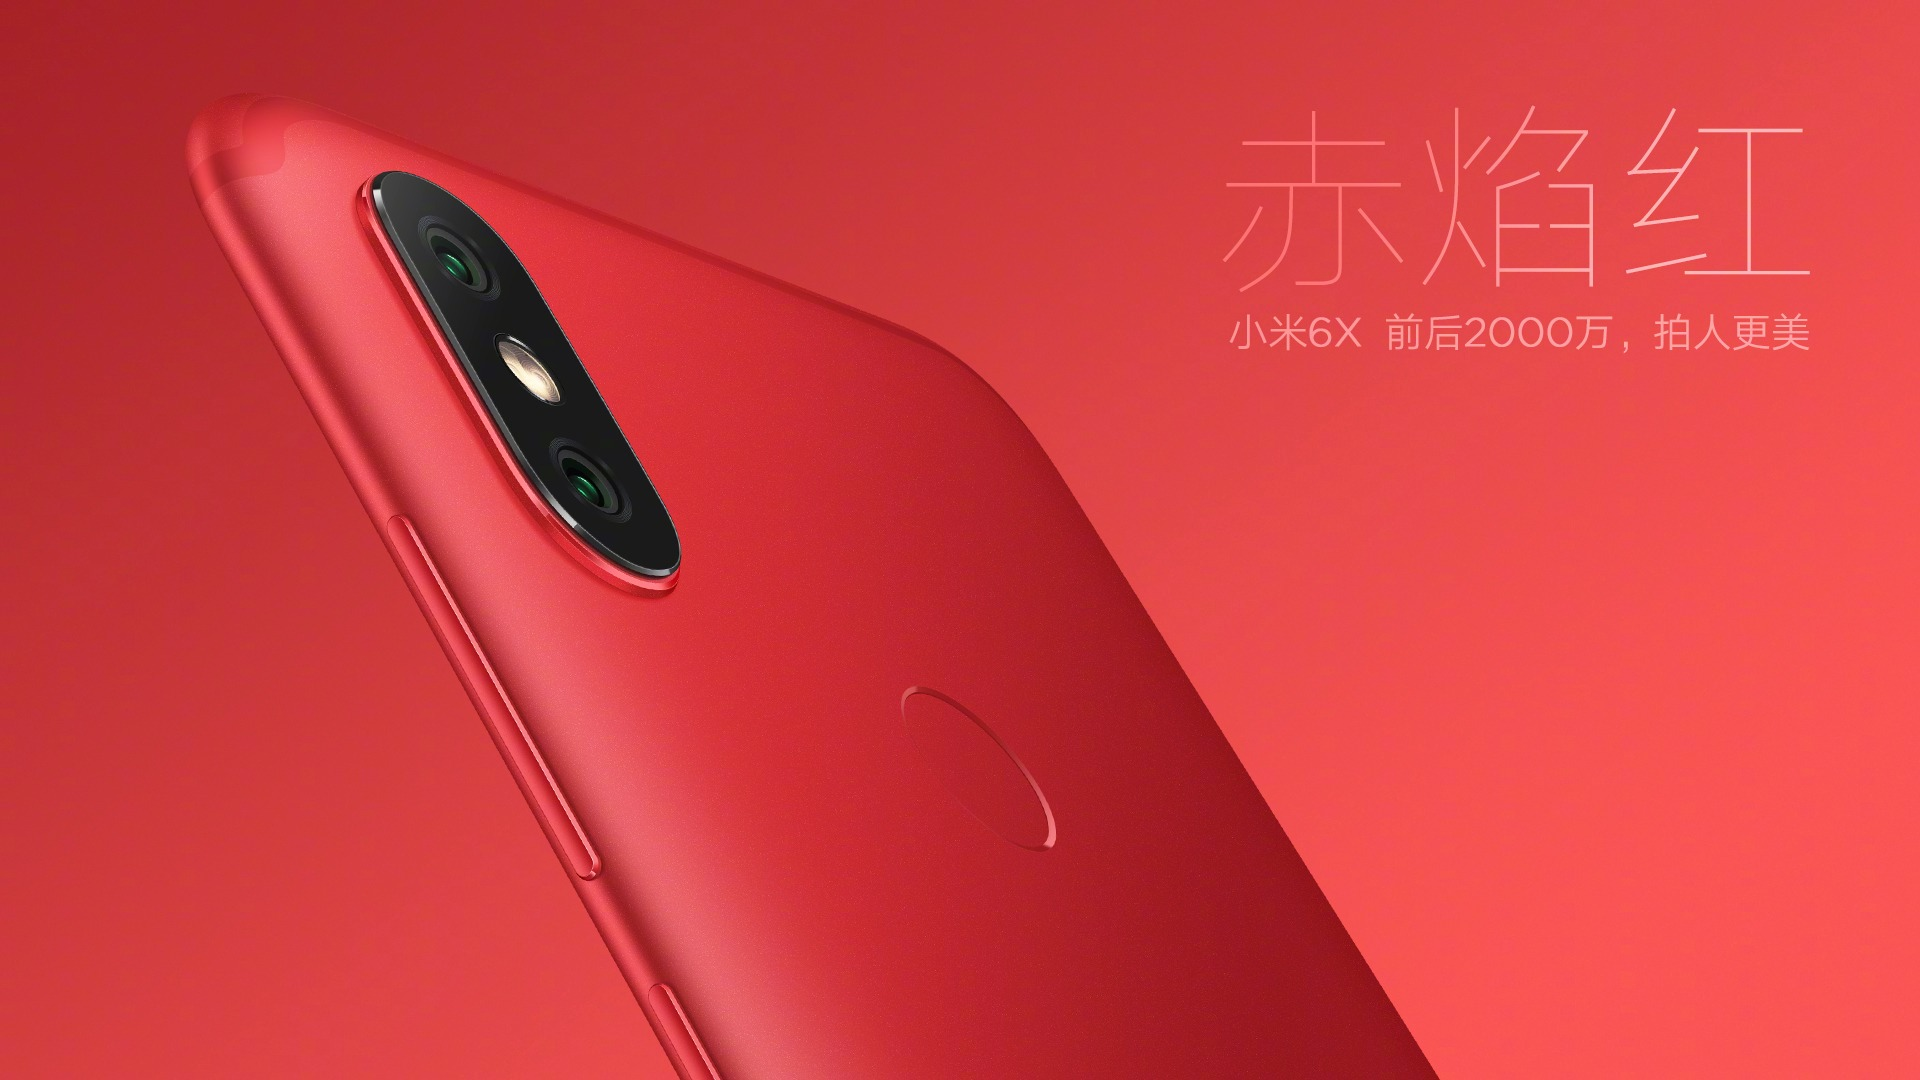 Xiaomi allegedly preparing a dual-camera budget phone called the Redmi S2